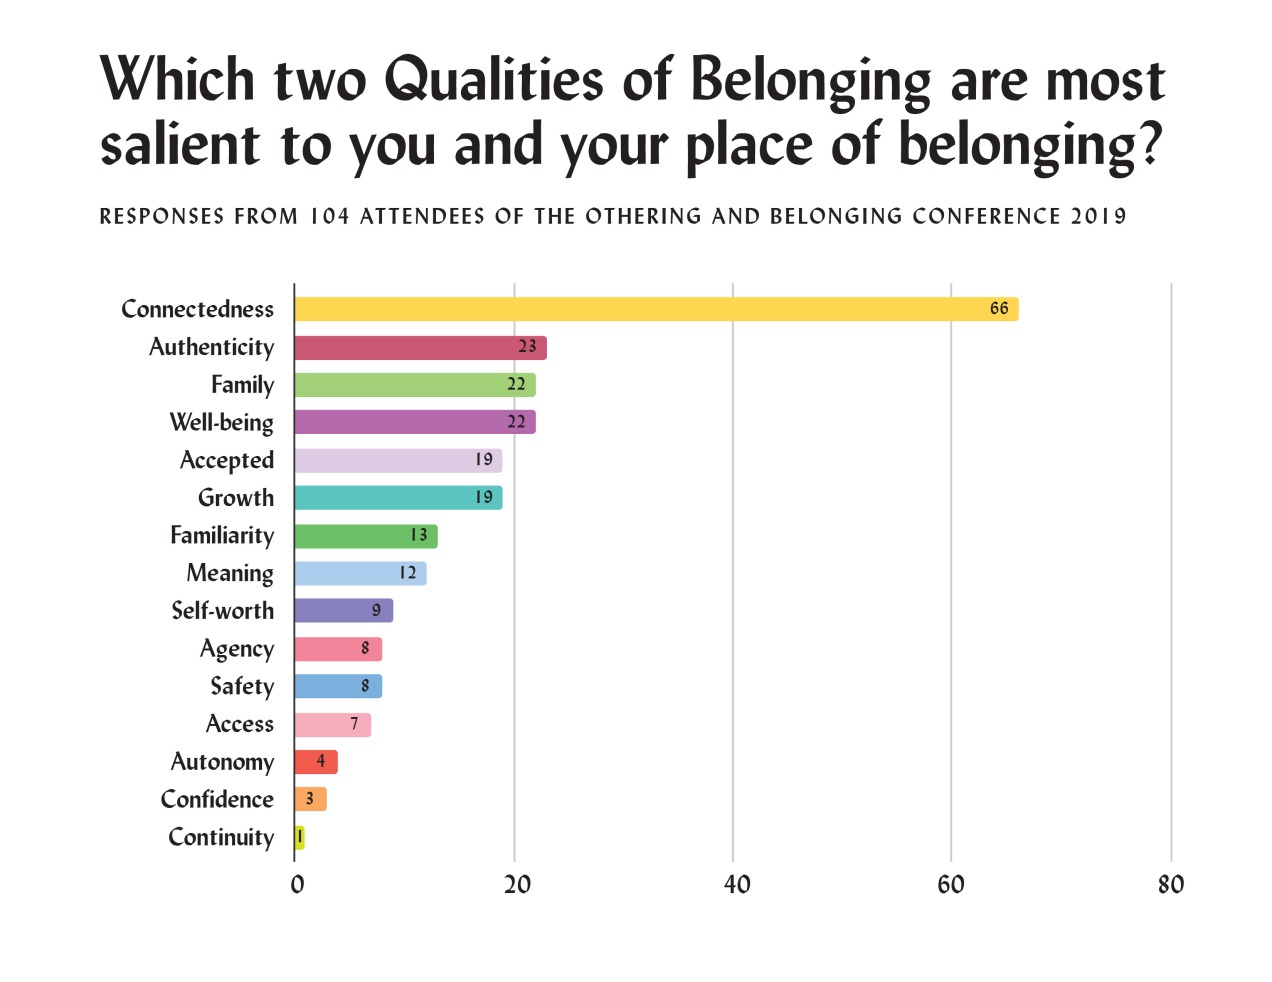 """A bar chart titled """"Which two qualities of belonging are salient to you and your place of belonging?"""" Responses from 104 attendees of the Othering and Belonging Conference 2019. Connectedness: 66. Authenticity: 23. Family: 22. Well-being: 22. Accepted: 19. Growth: 19. Familiarity: 13. Meaning: 12. Self-worth: 9. Agency 8. Safety: 8. Access: 7. Autonomy: 4. Confidence: 3. Continuity: 1."""